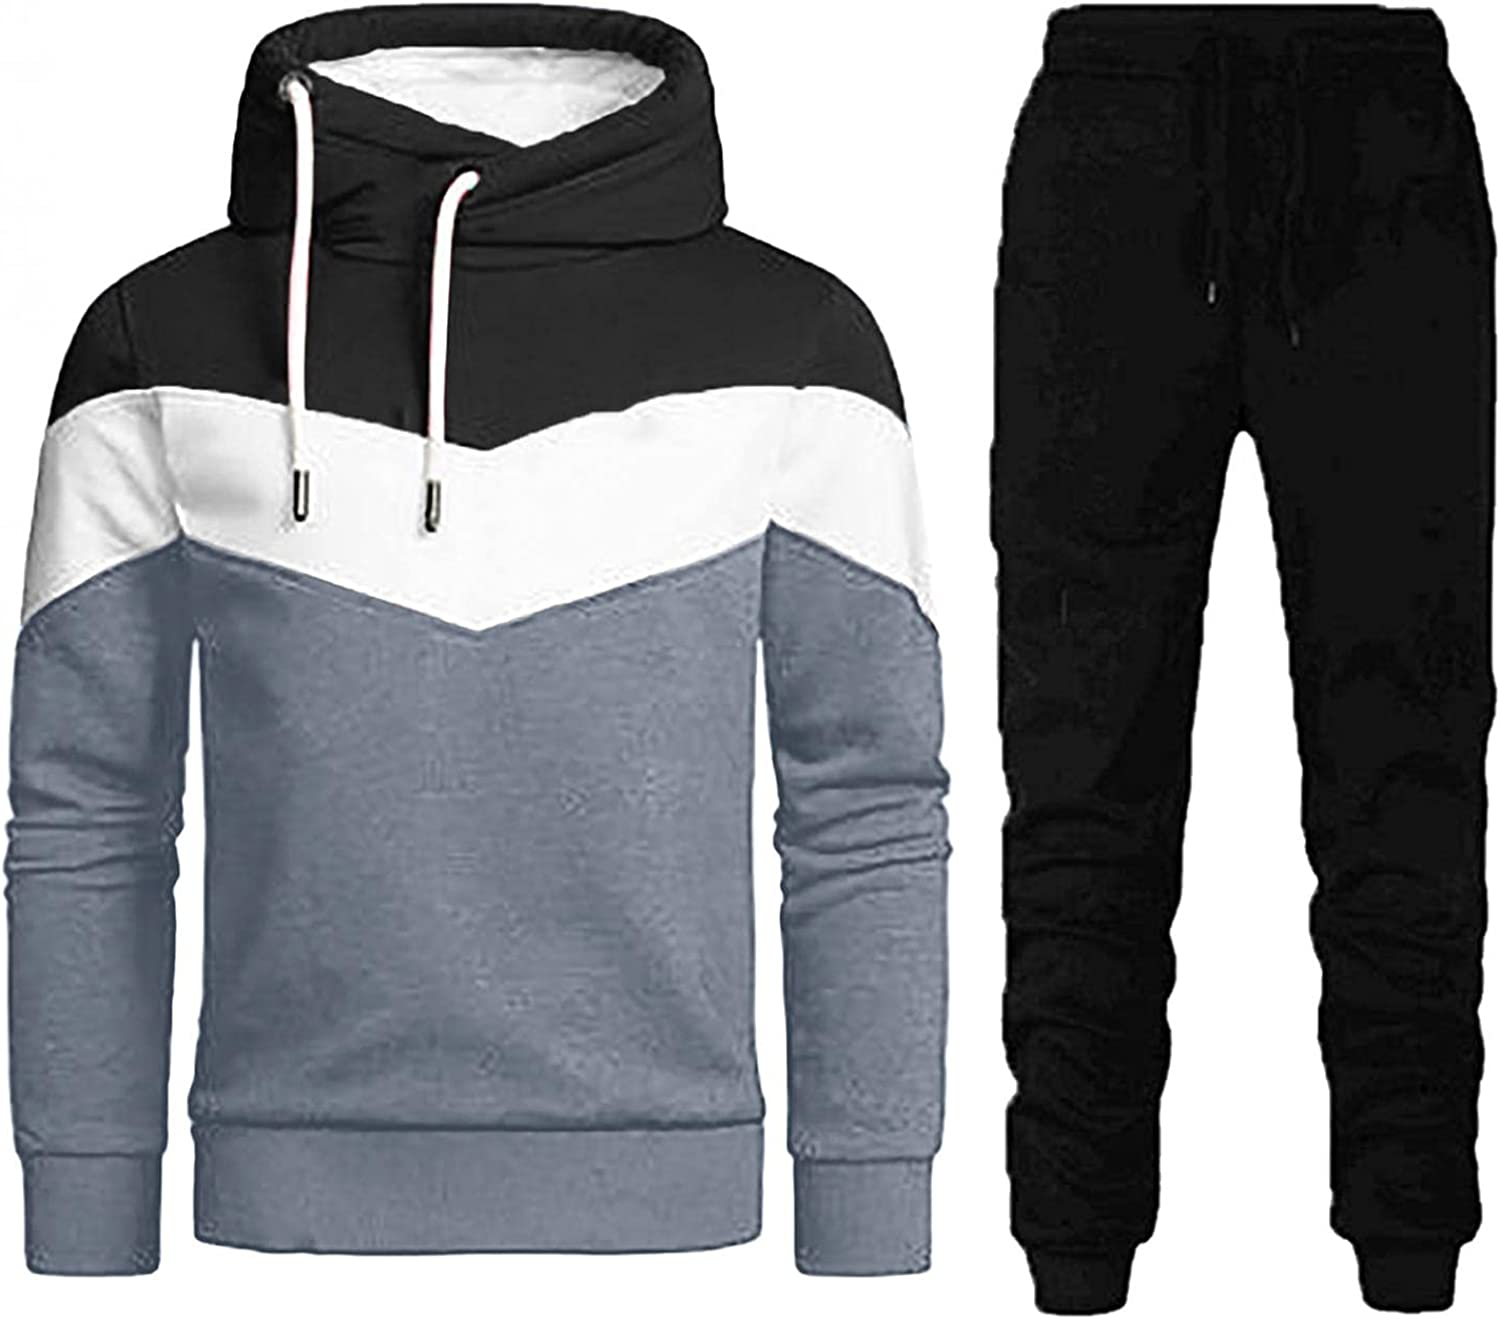 Mens 2 Piece Tracksuits Long Sleeve Hoodie Sweatpants Sets Casual Athletic Comfy Outfits Classic Cotton Sweatsuits